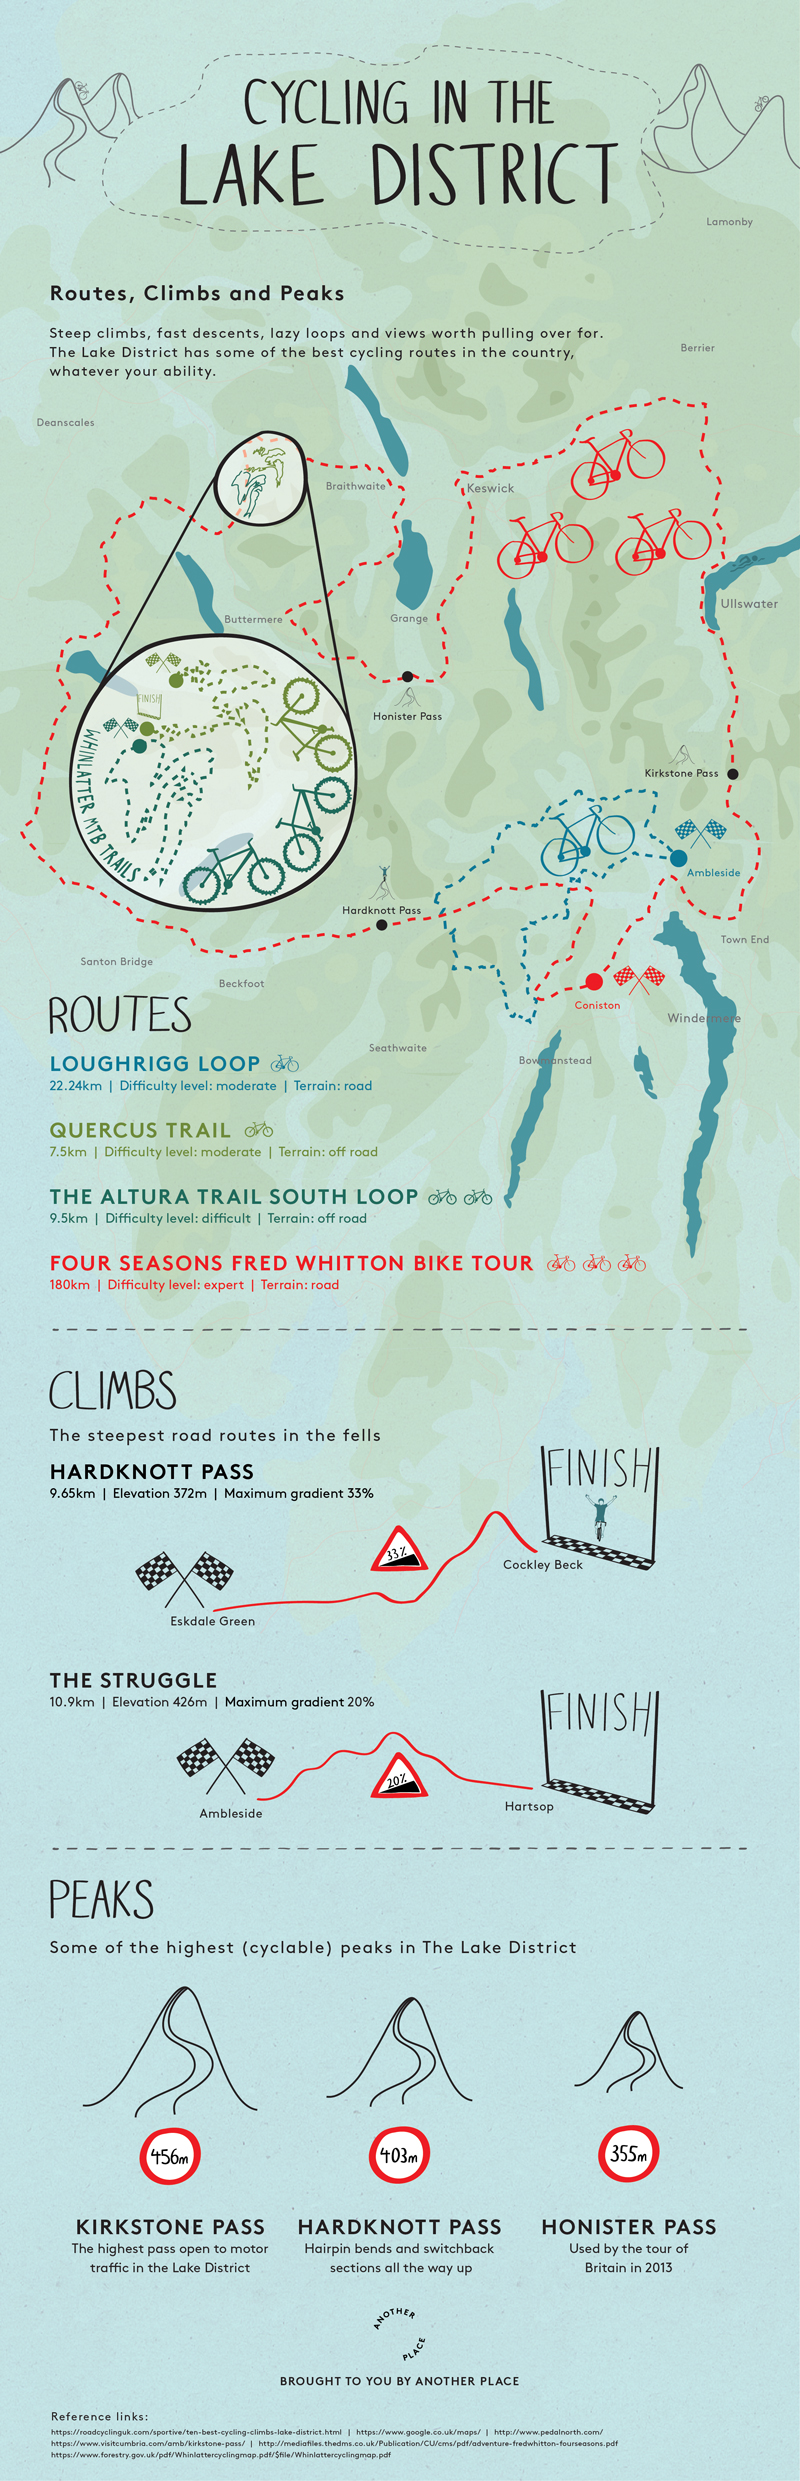 Lake District Cycling - Infographic